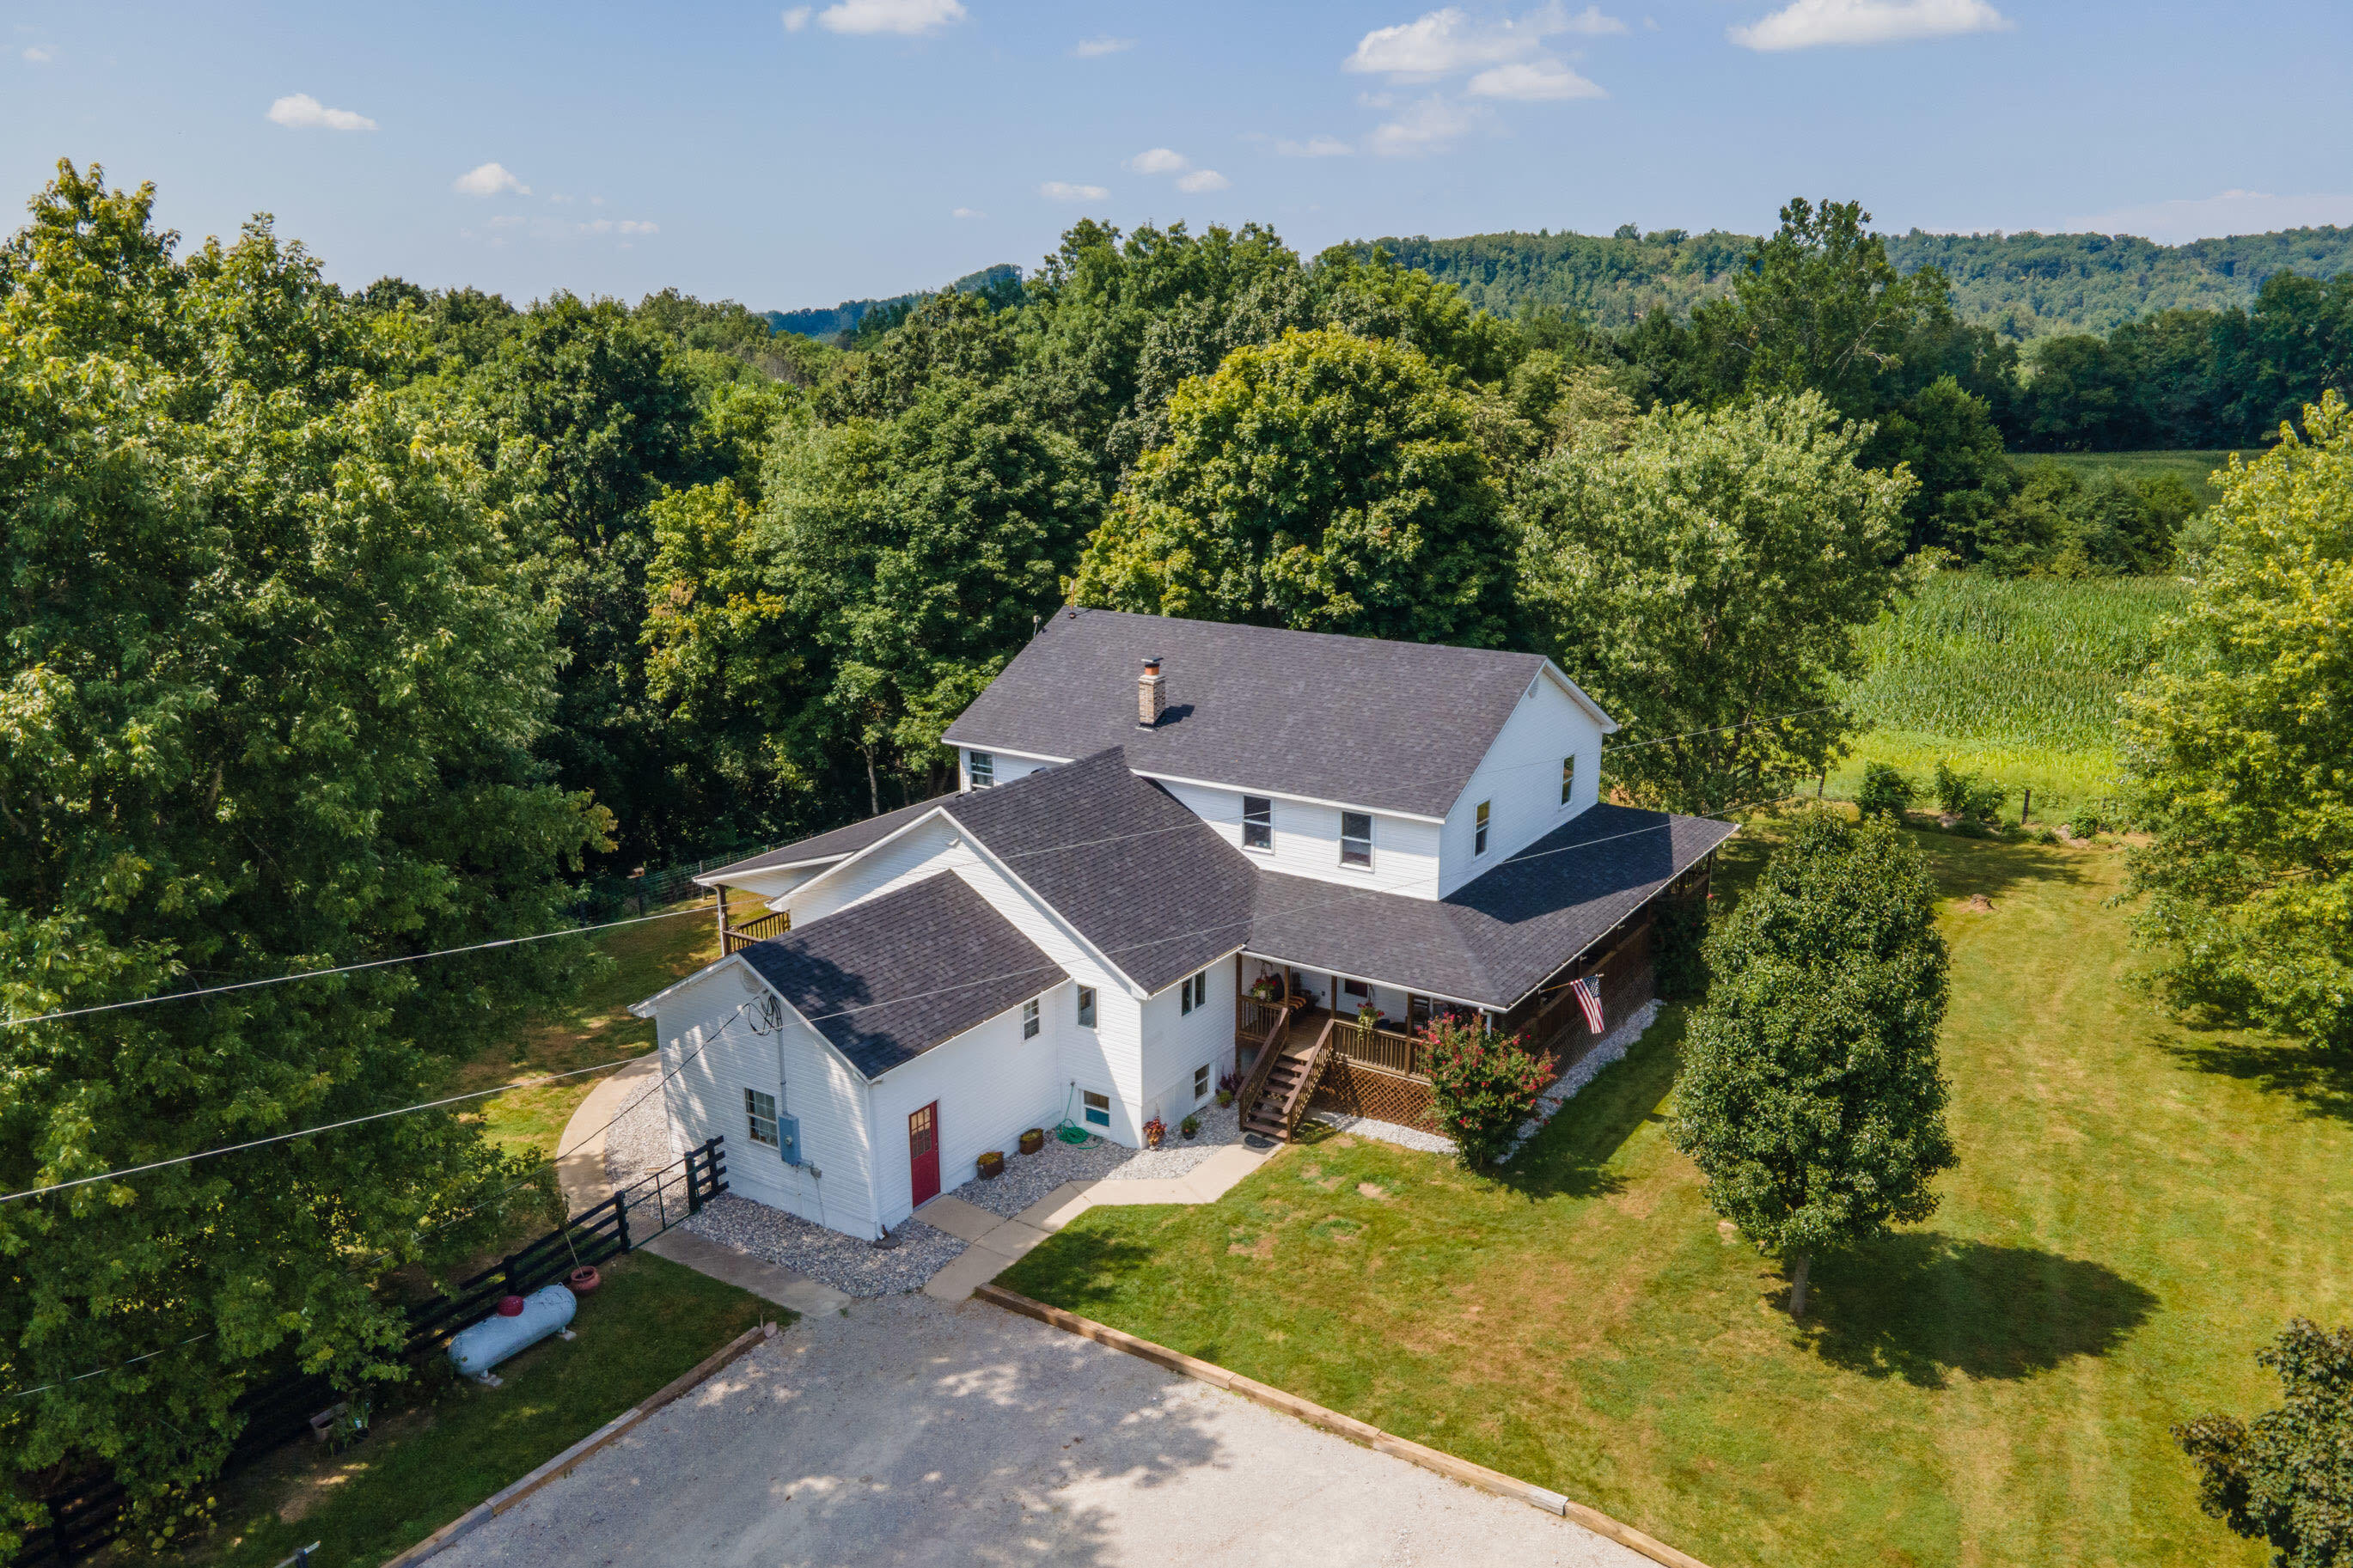 2642 KY 3246 Highway, Crab Orchard, Kentucky 40419, 7 Bedrooms Bedrooms, ,3 BathroomsBathrooms,Farm/land,For Sale,KY 3246,20120506